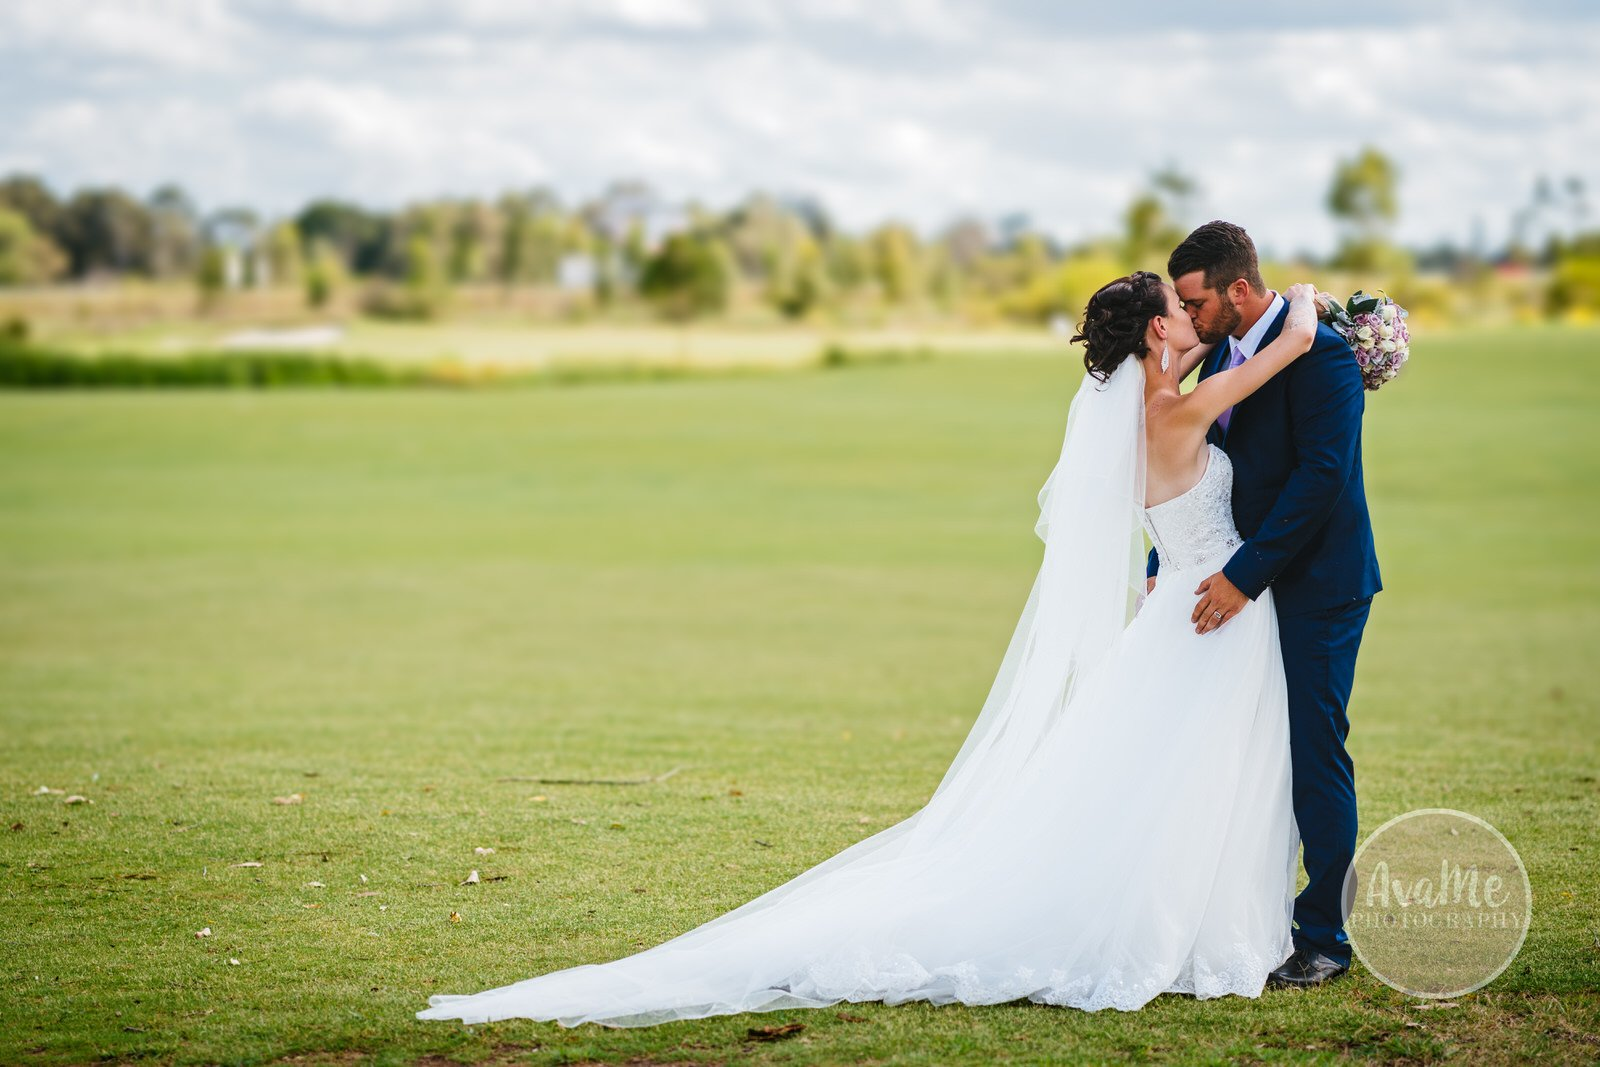 nat-josh-stonecutters-golf-club-wedding-colebee-104